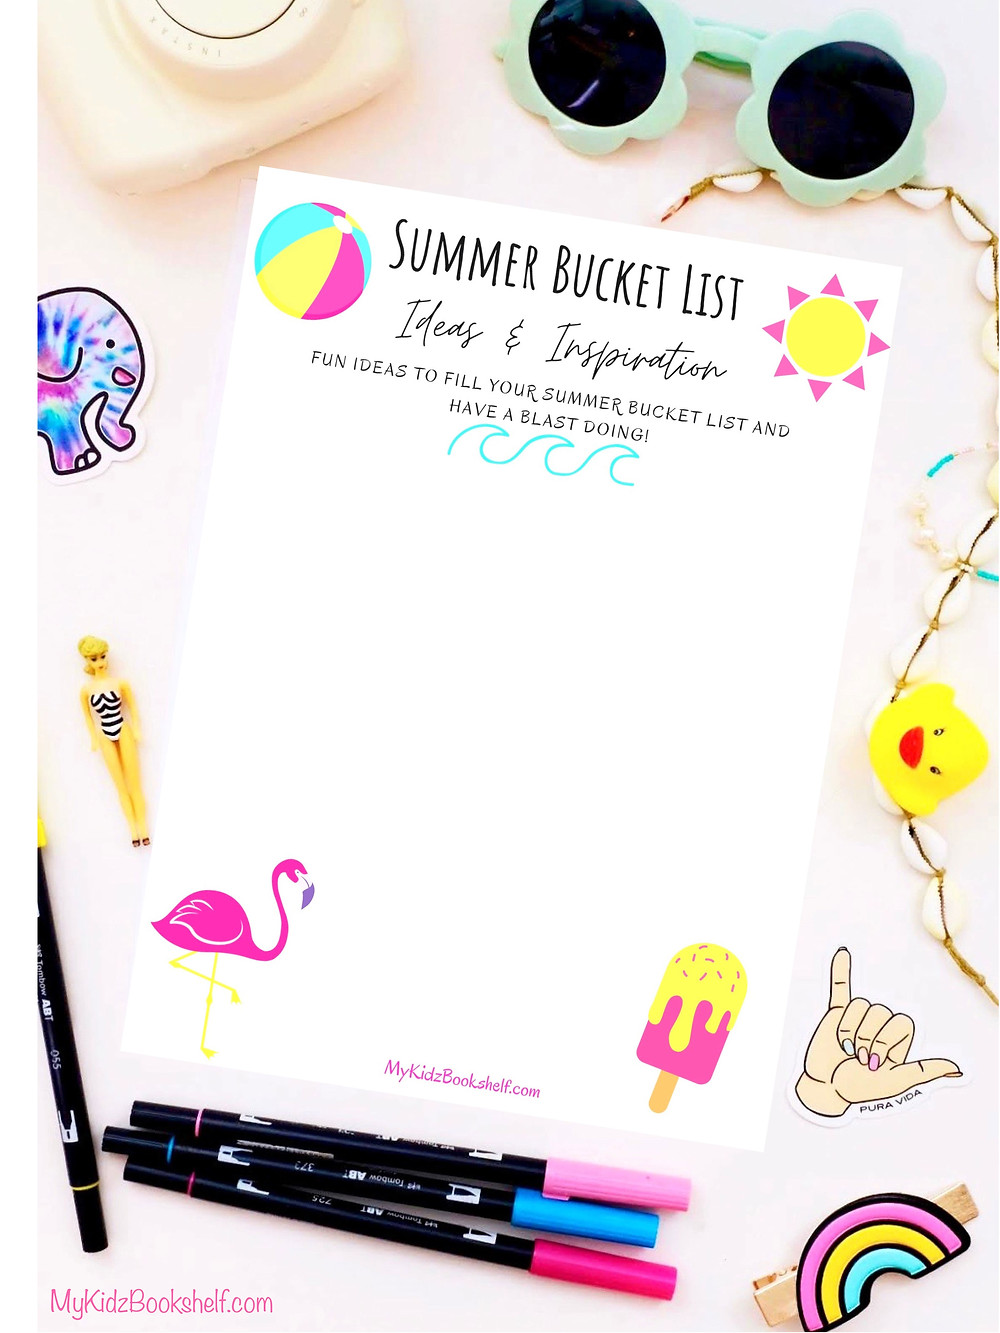 Summer Bucket List Ideas & Inspiration Free Printable paper to write your ideas on